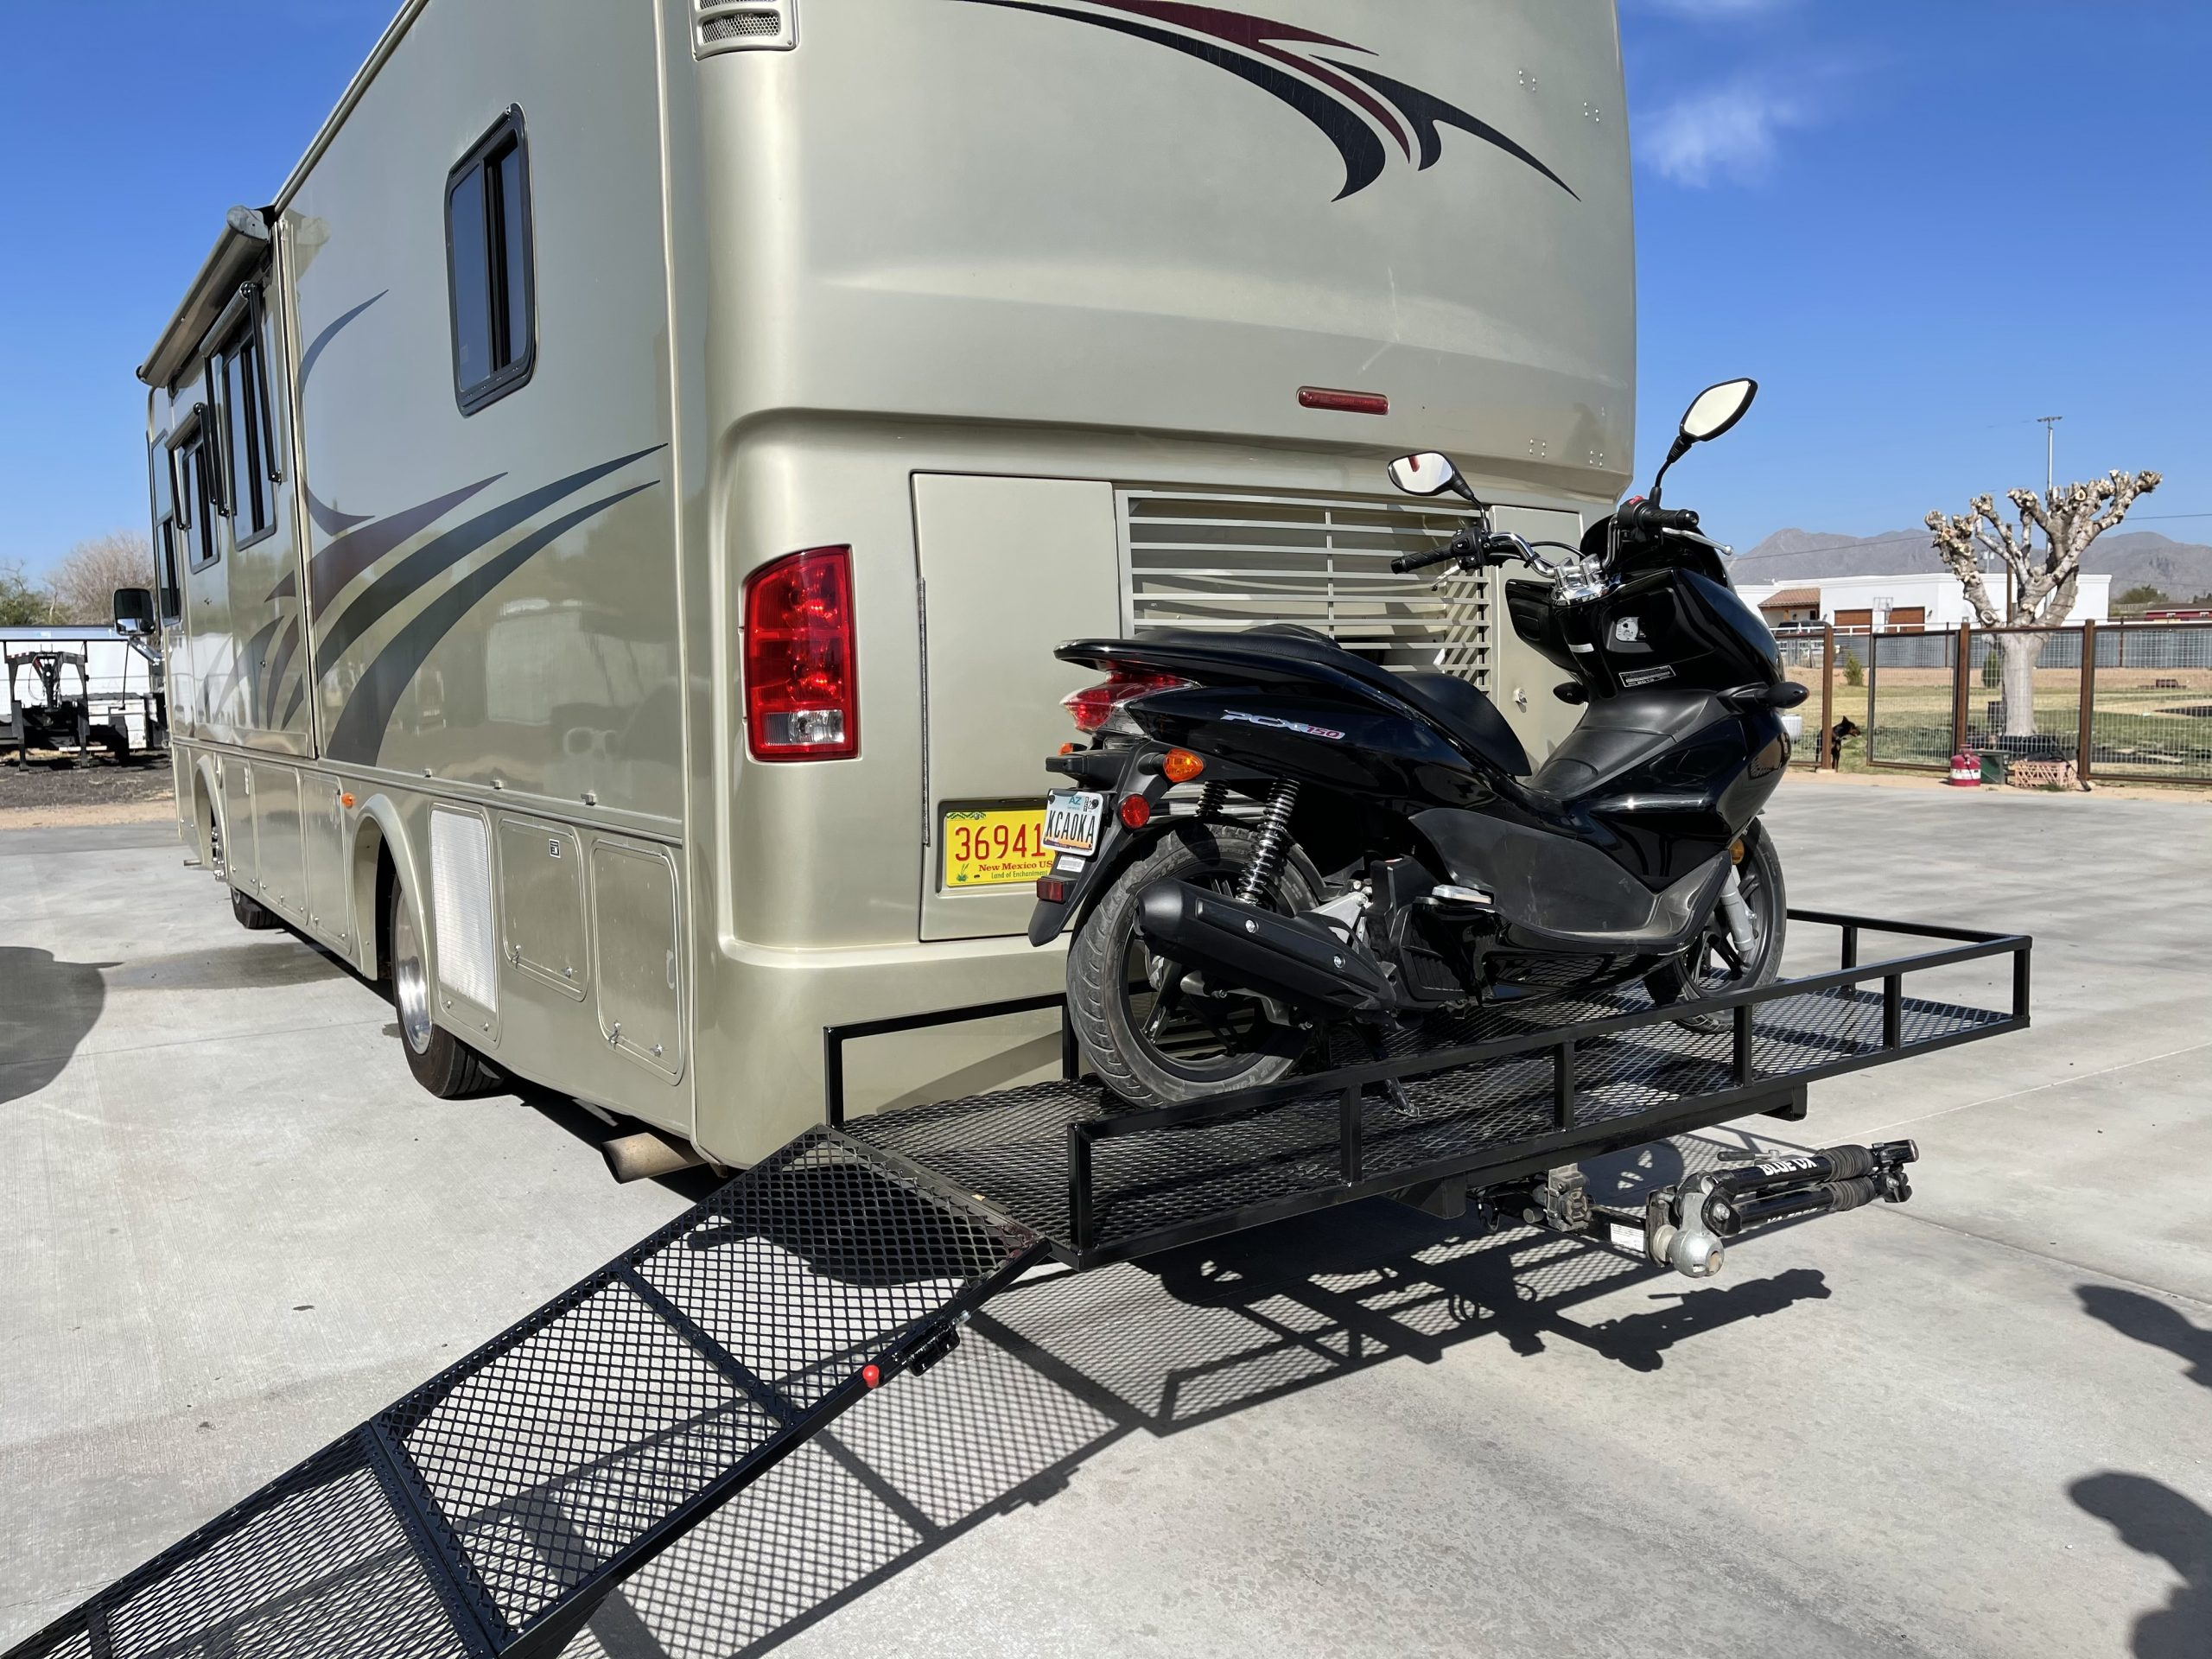 Motorcycle Scooter Rack for Class A RV Motorhome